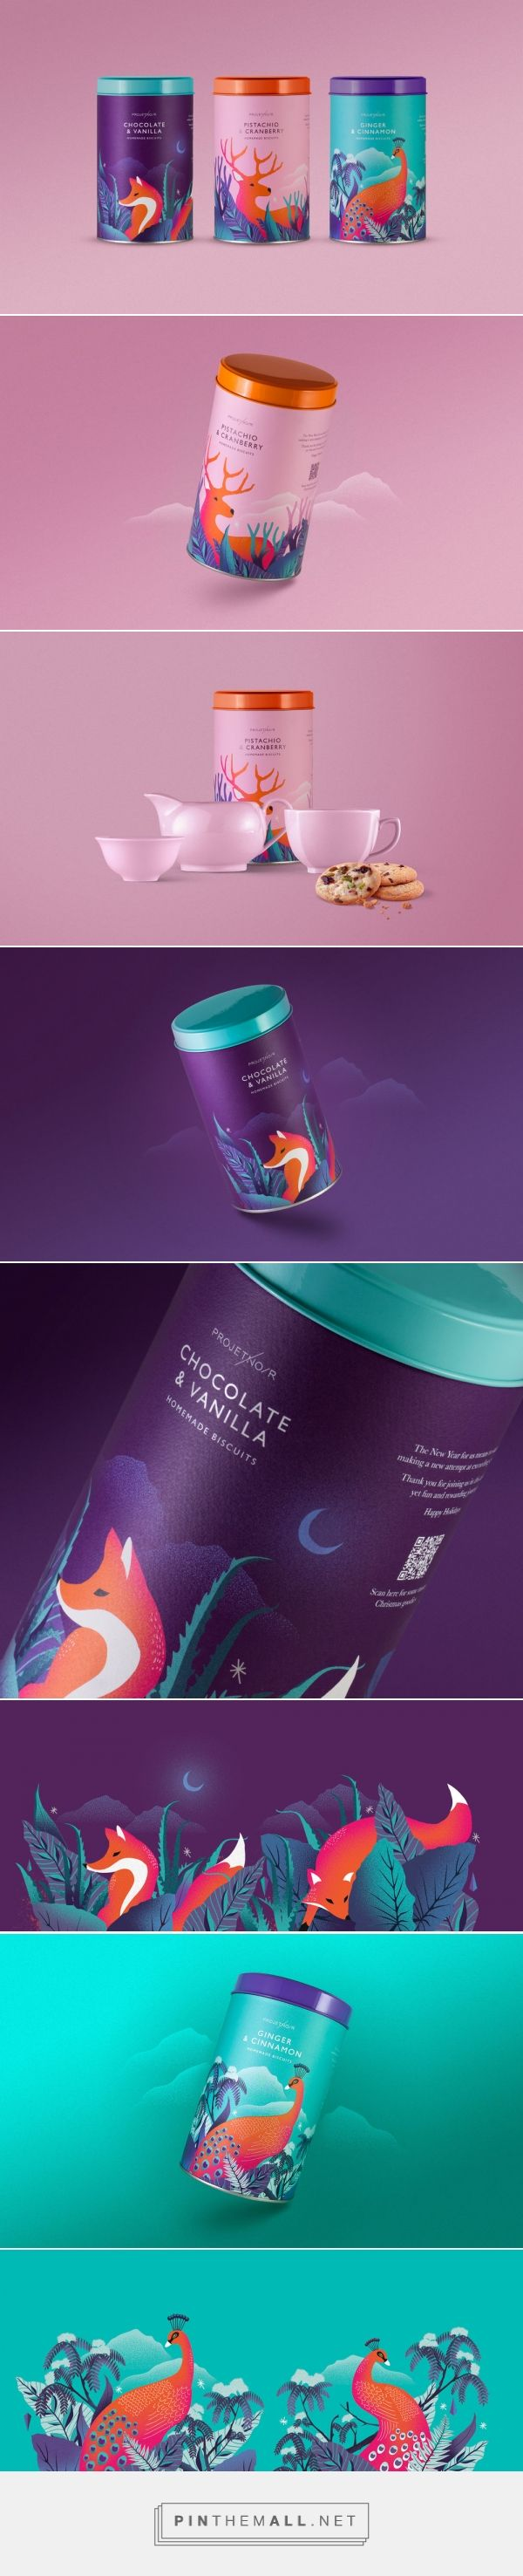 Biscuit Tins   design by Project Noir